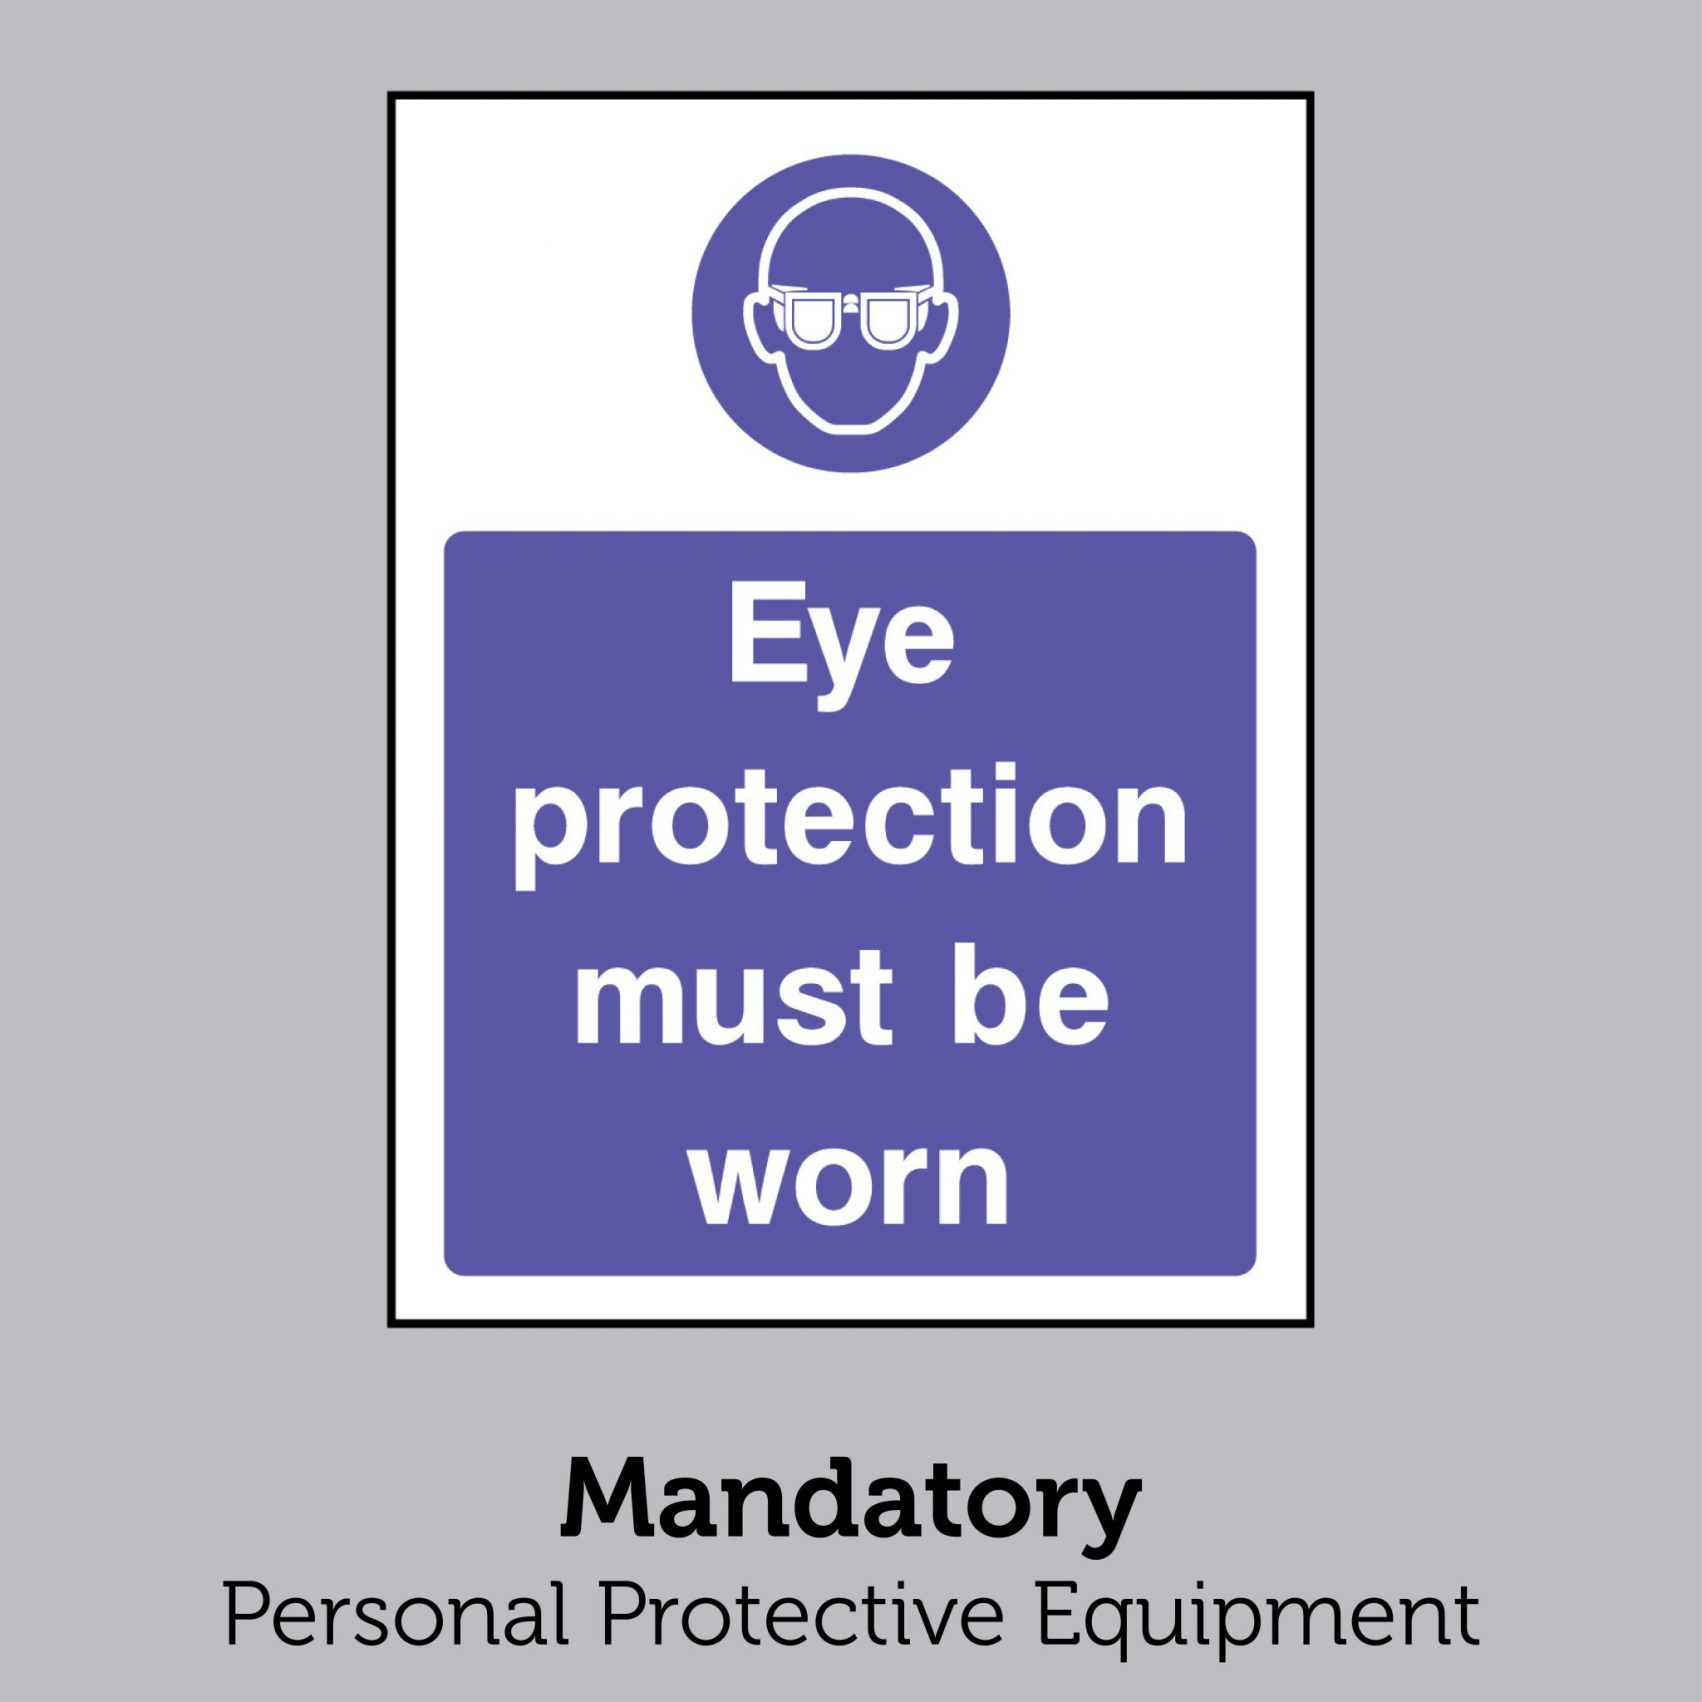 Mandatory - Personal Protective Equipment